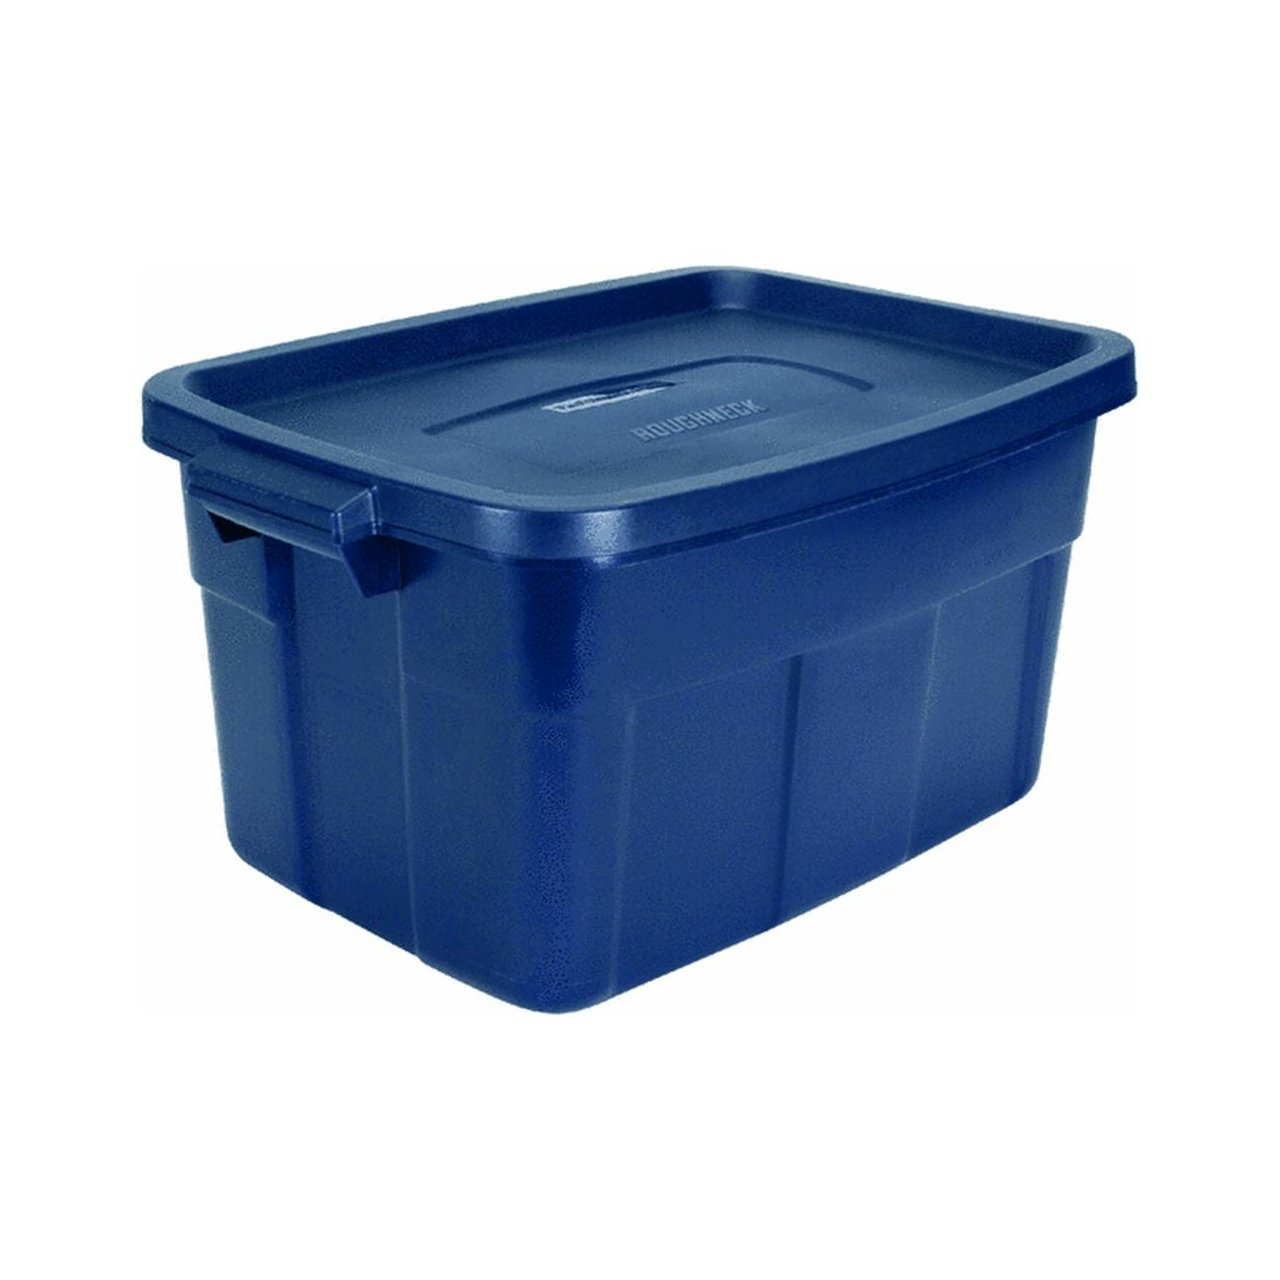 Rubbermaid tub